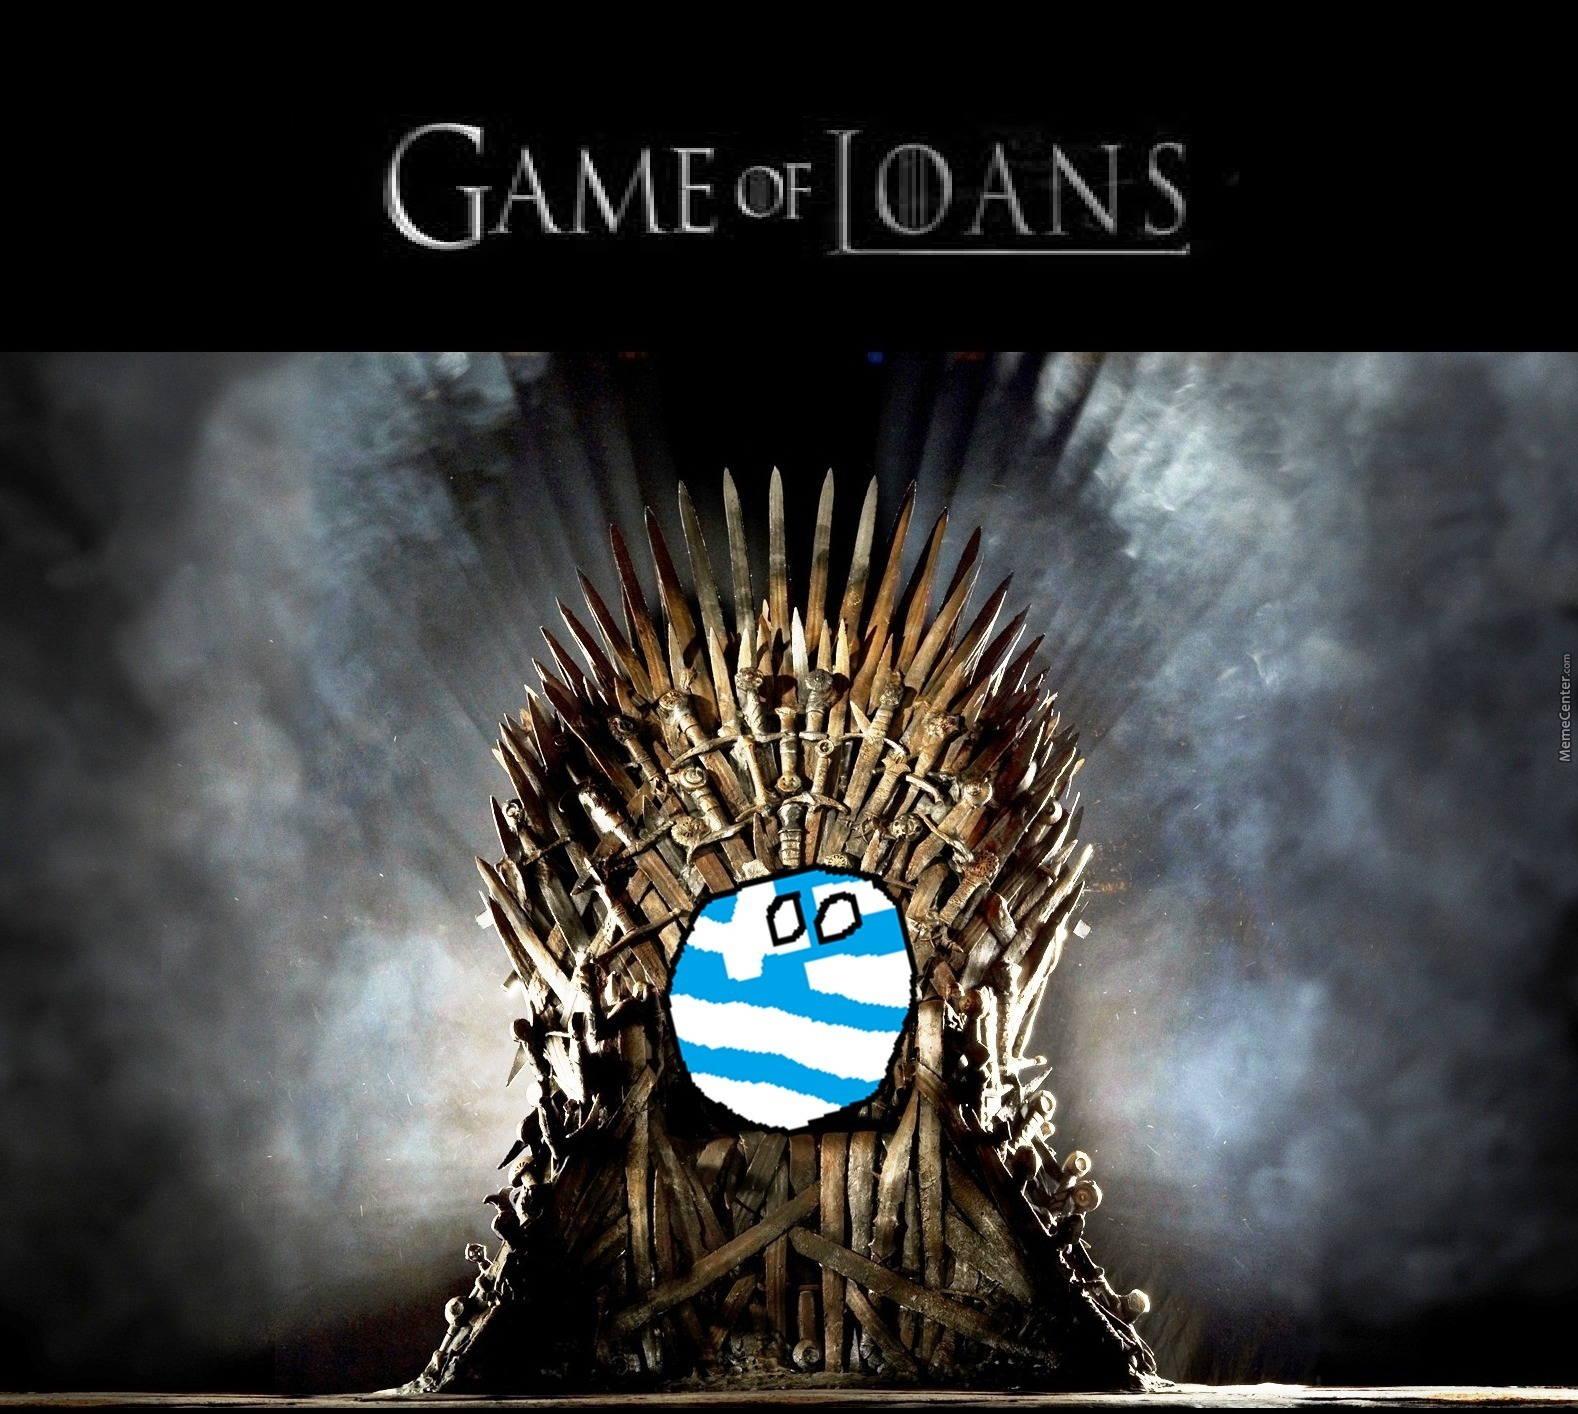 A Game Of Loans